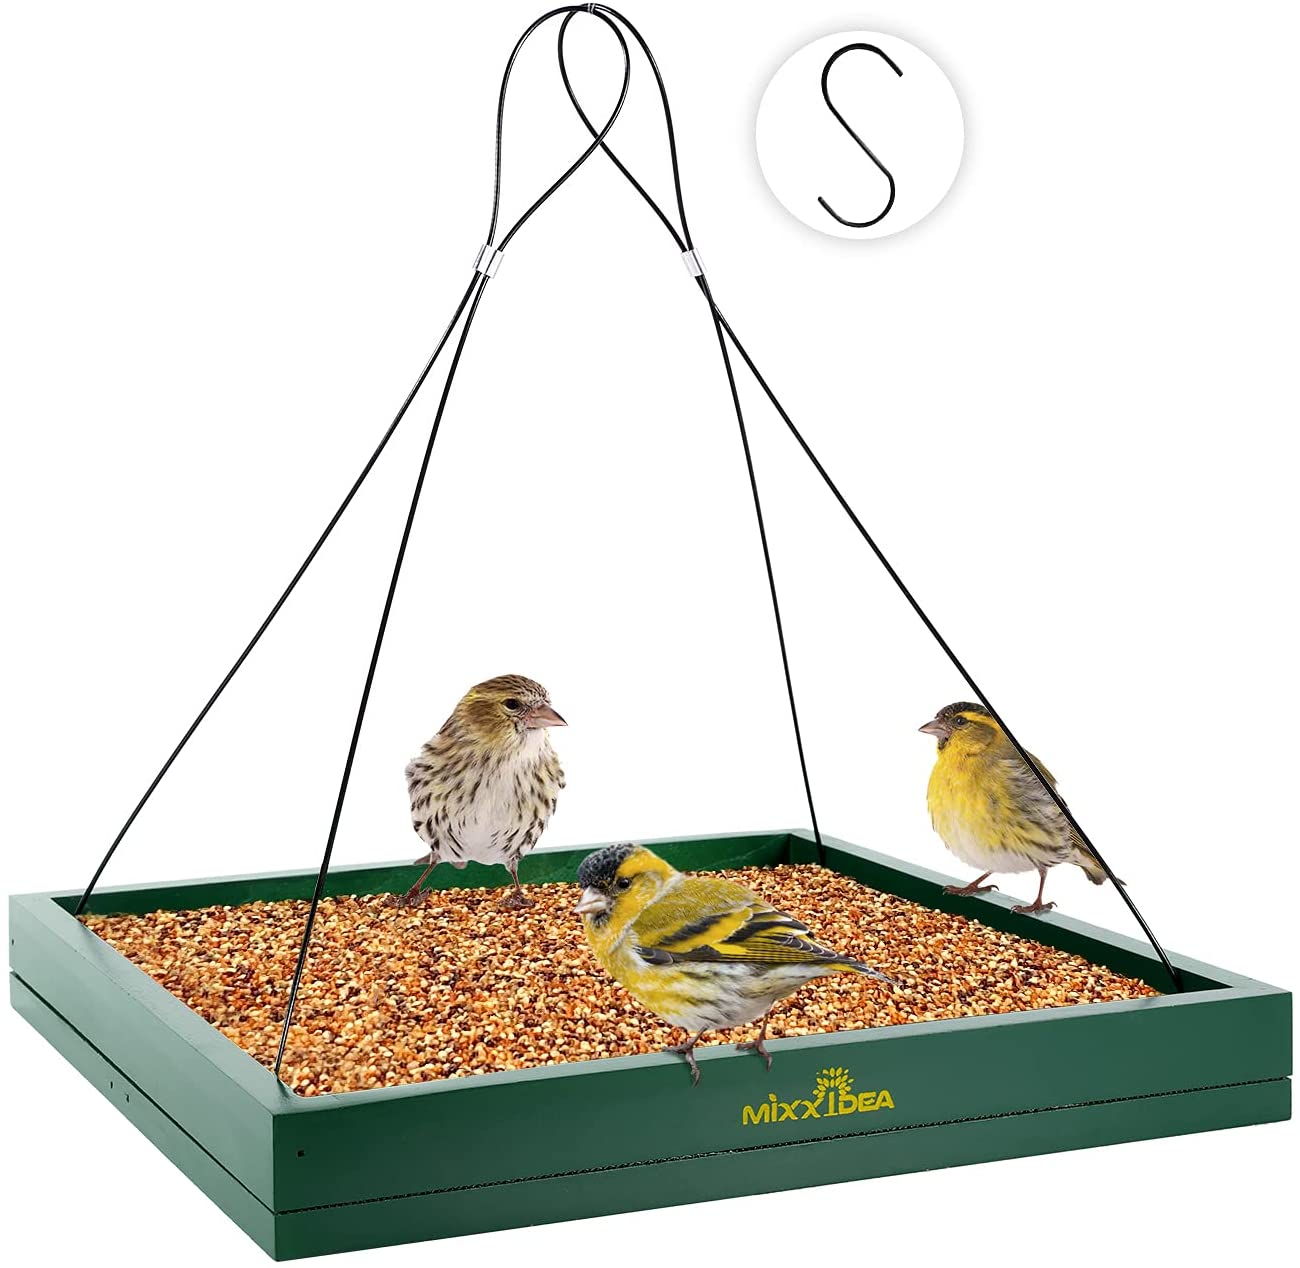 MIXXIDEA Bird Feeder Hanging Tray, Seed Tray Wooden Platform Hummingbird Feeder Hanging Tray Mesh Seed Platform for Garden Yard Outside Decoration Attracting for Wild Birds (Green-1pk)